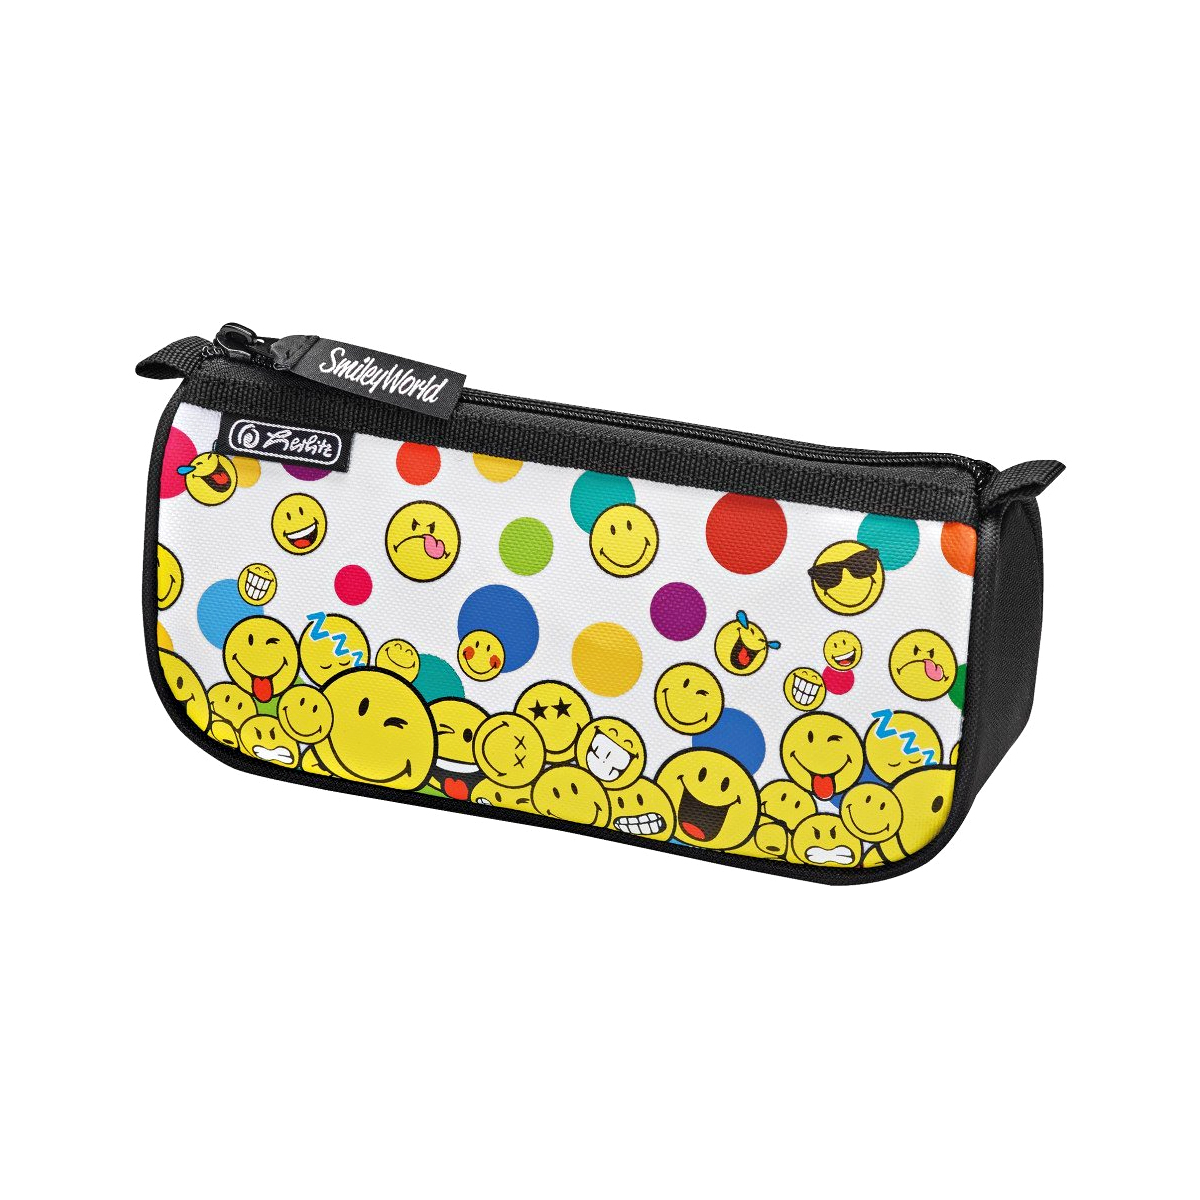 Penar Necessaire, Triunghiular, Sport, Smileyworld Rainbow Faces, Herlitz, 50015344